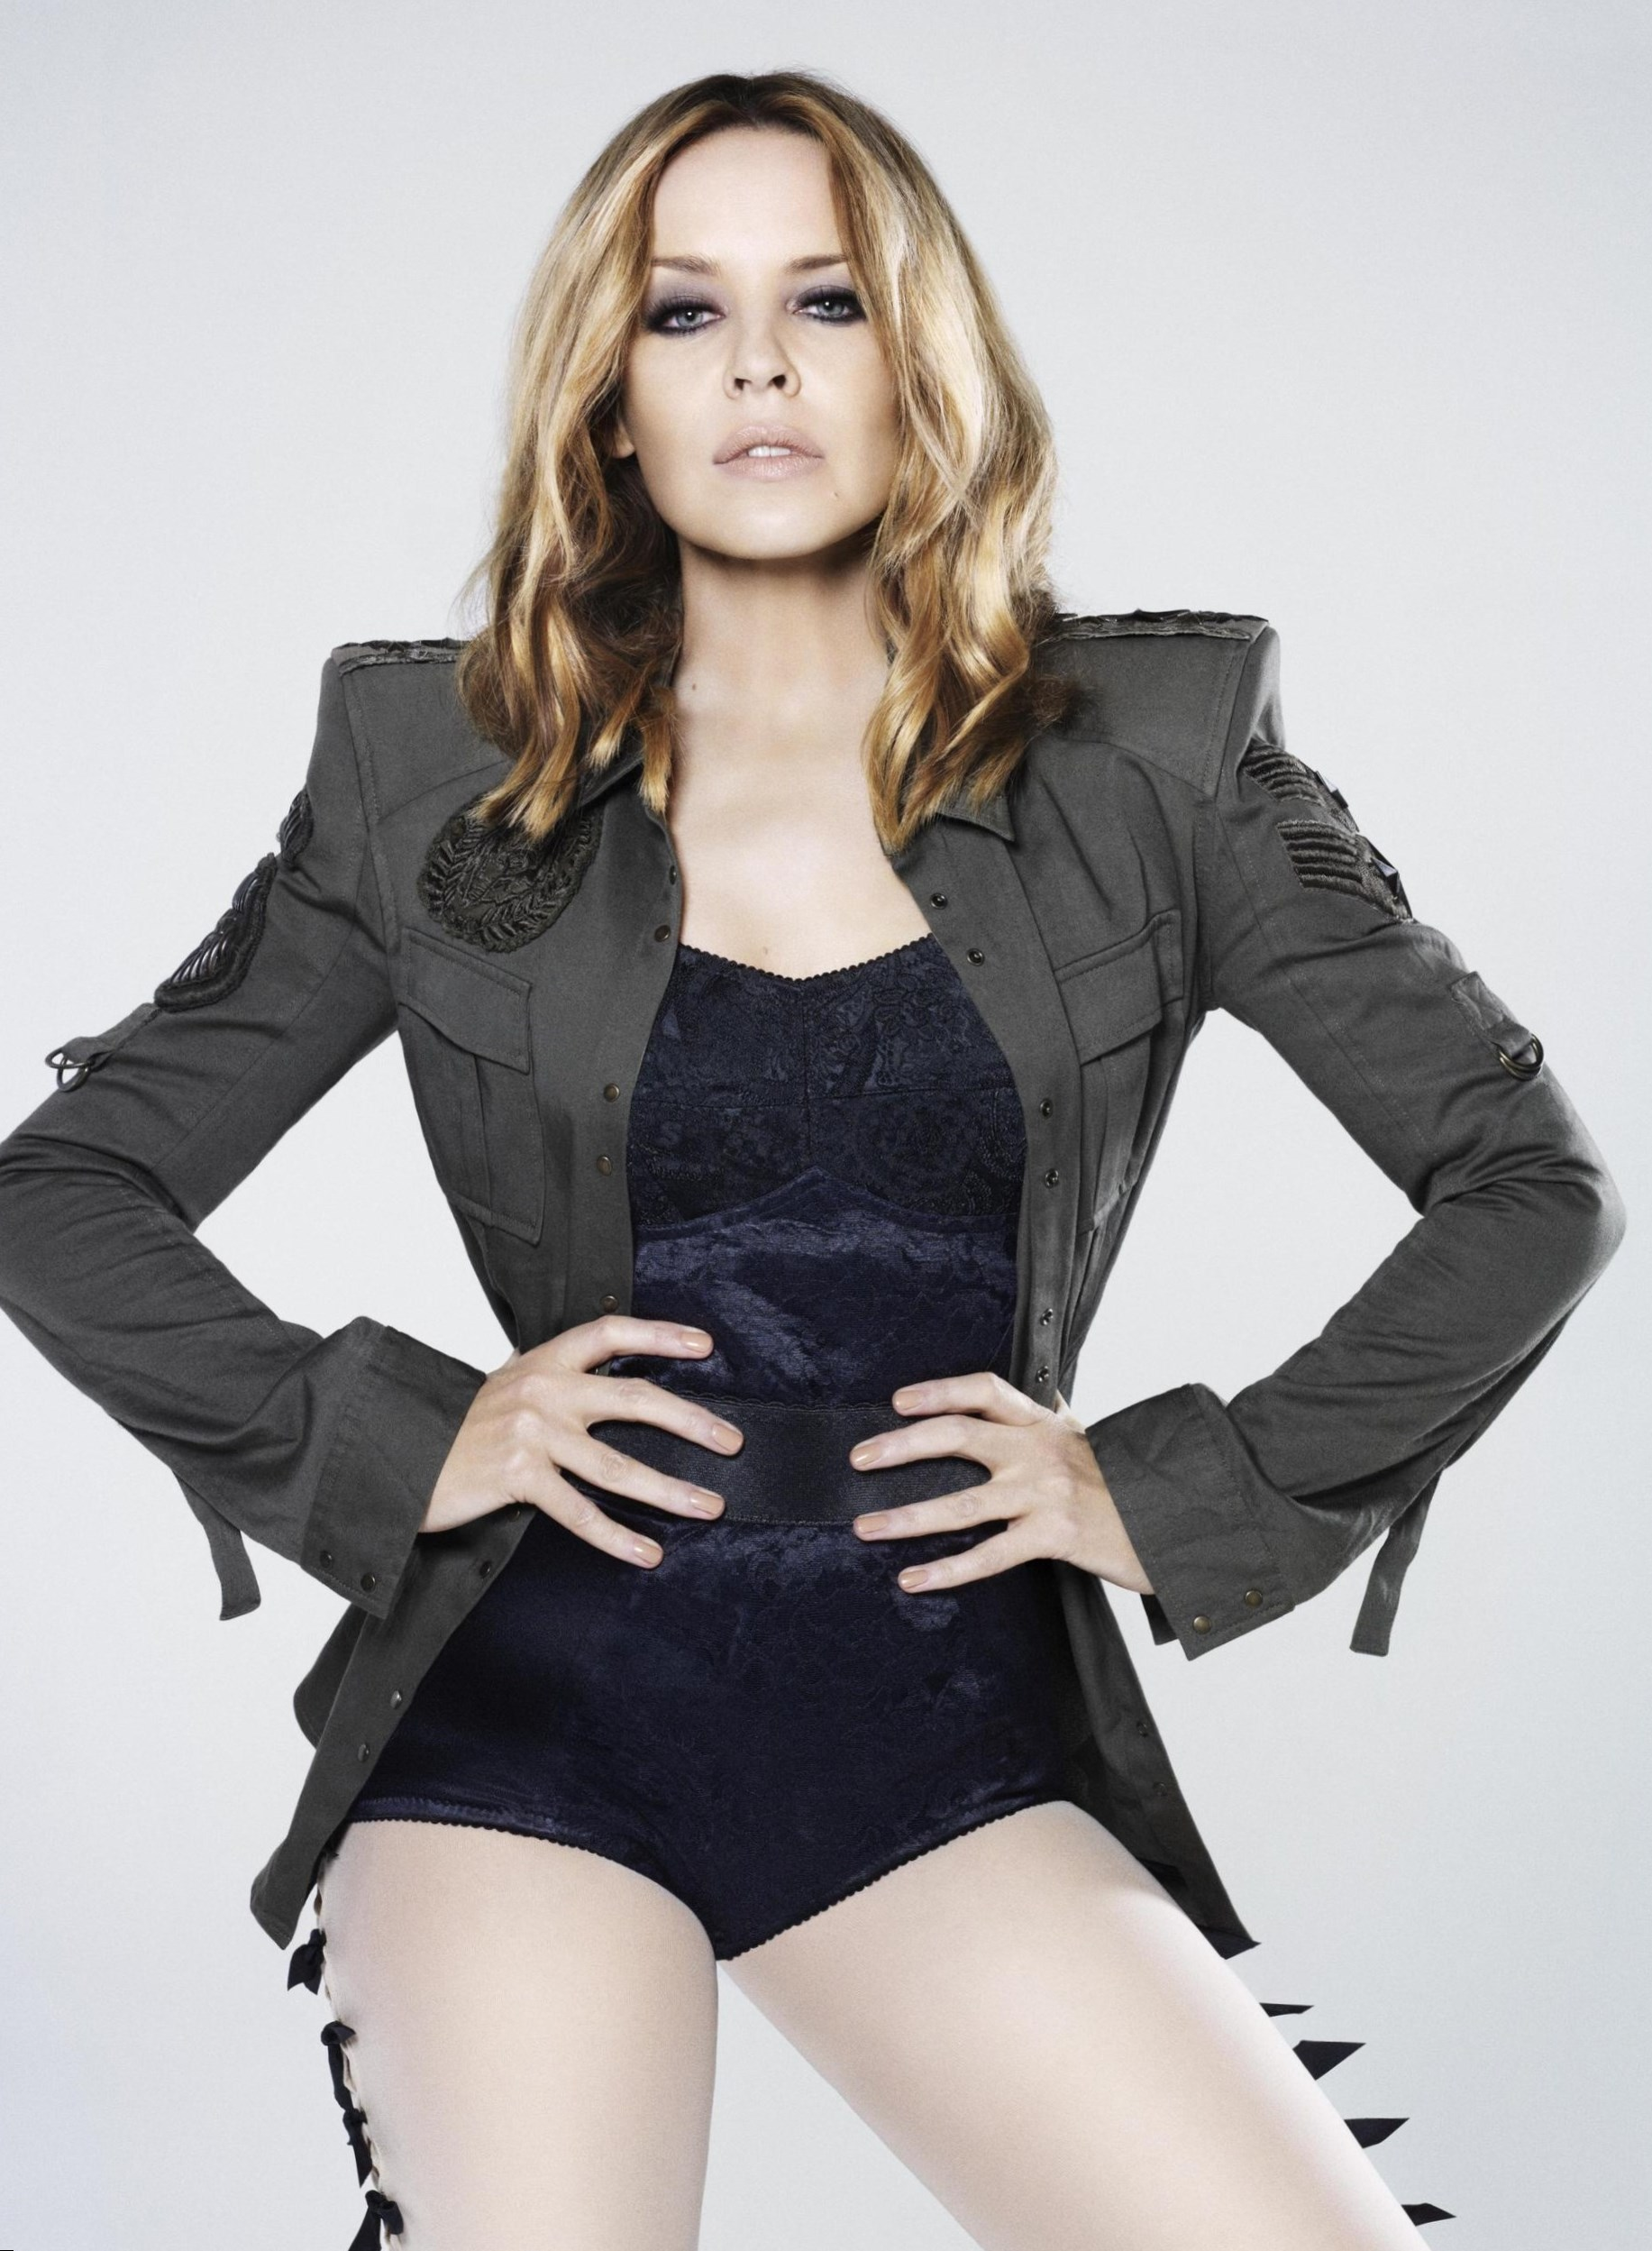 Kylie Minogue - Height, Weight, Age